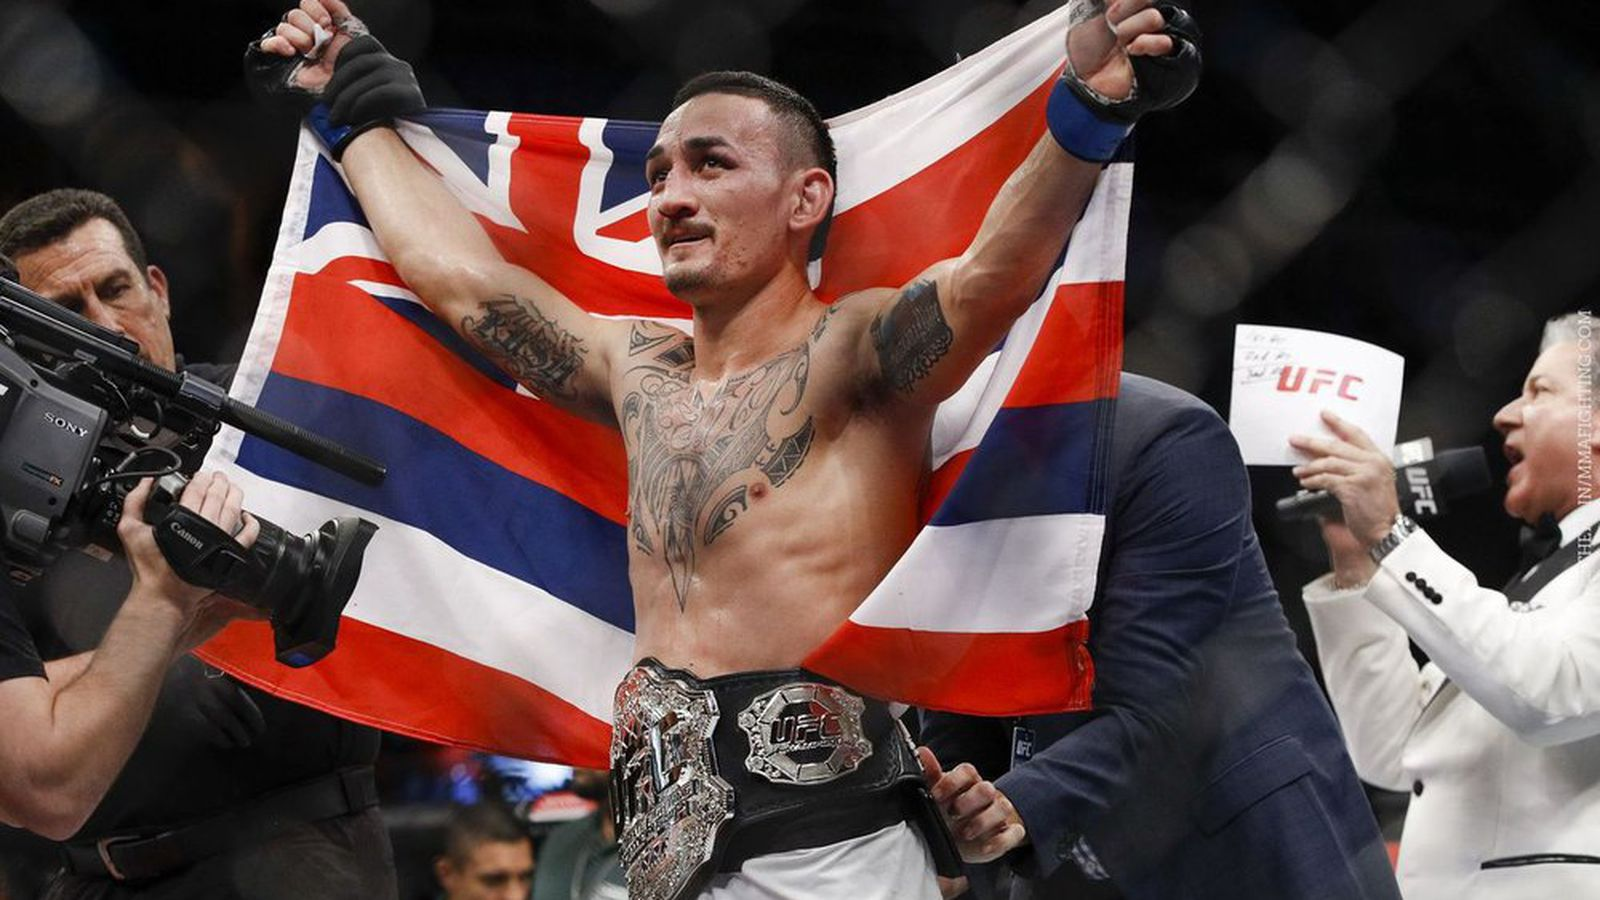 UFC 231 video promo for 'Holloway vs Ortega' welcomes you to 'The New Era'